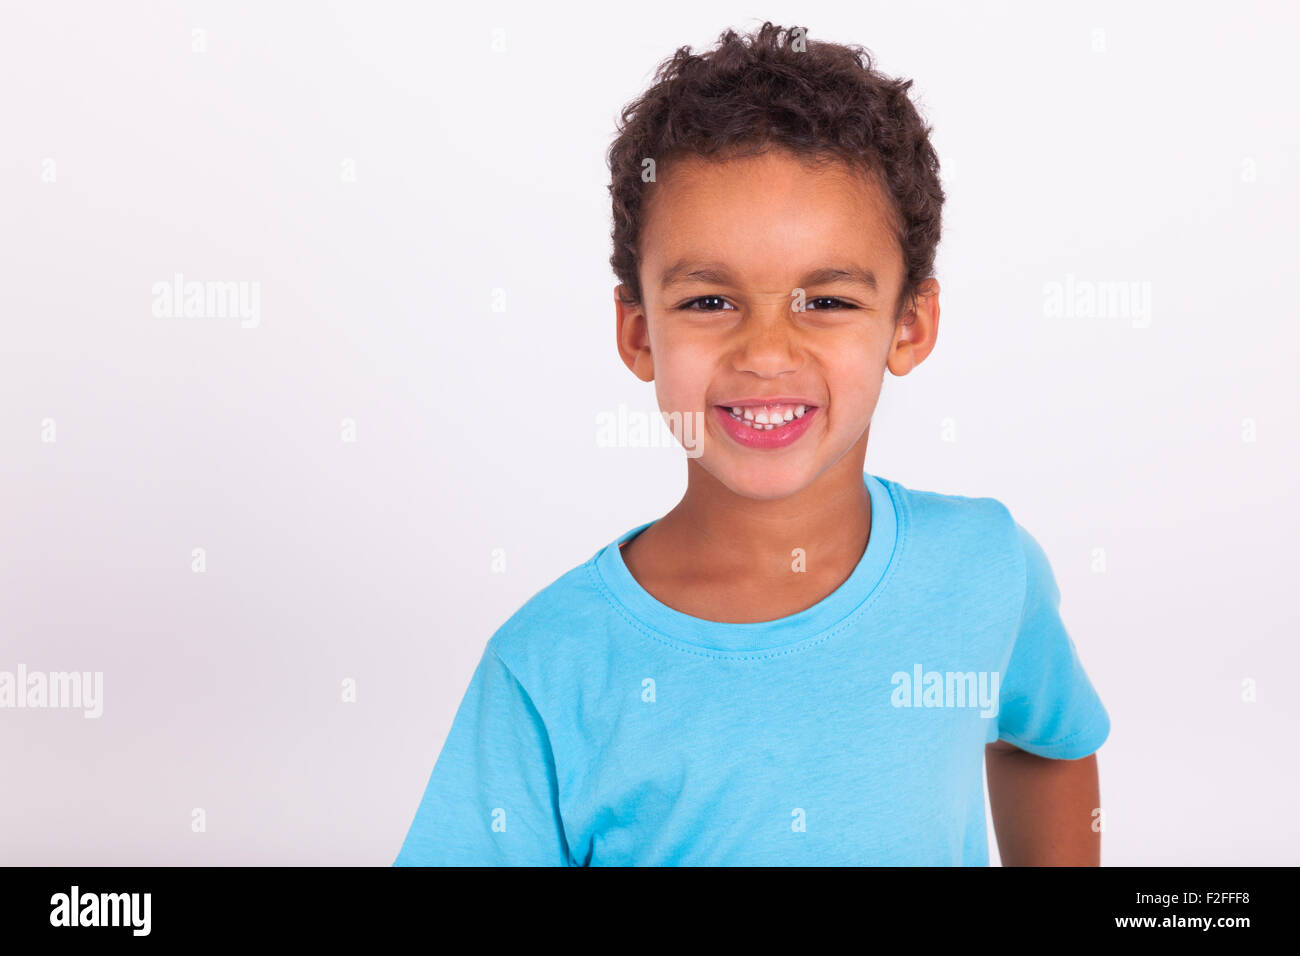 Portrait of a cute little African American boy smiling - Stock Image